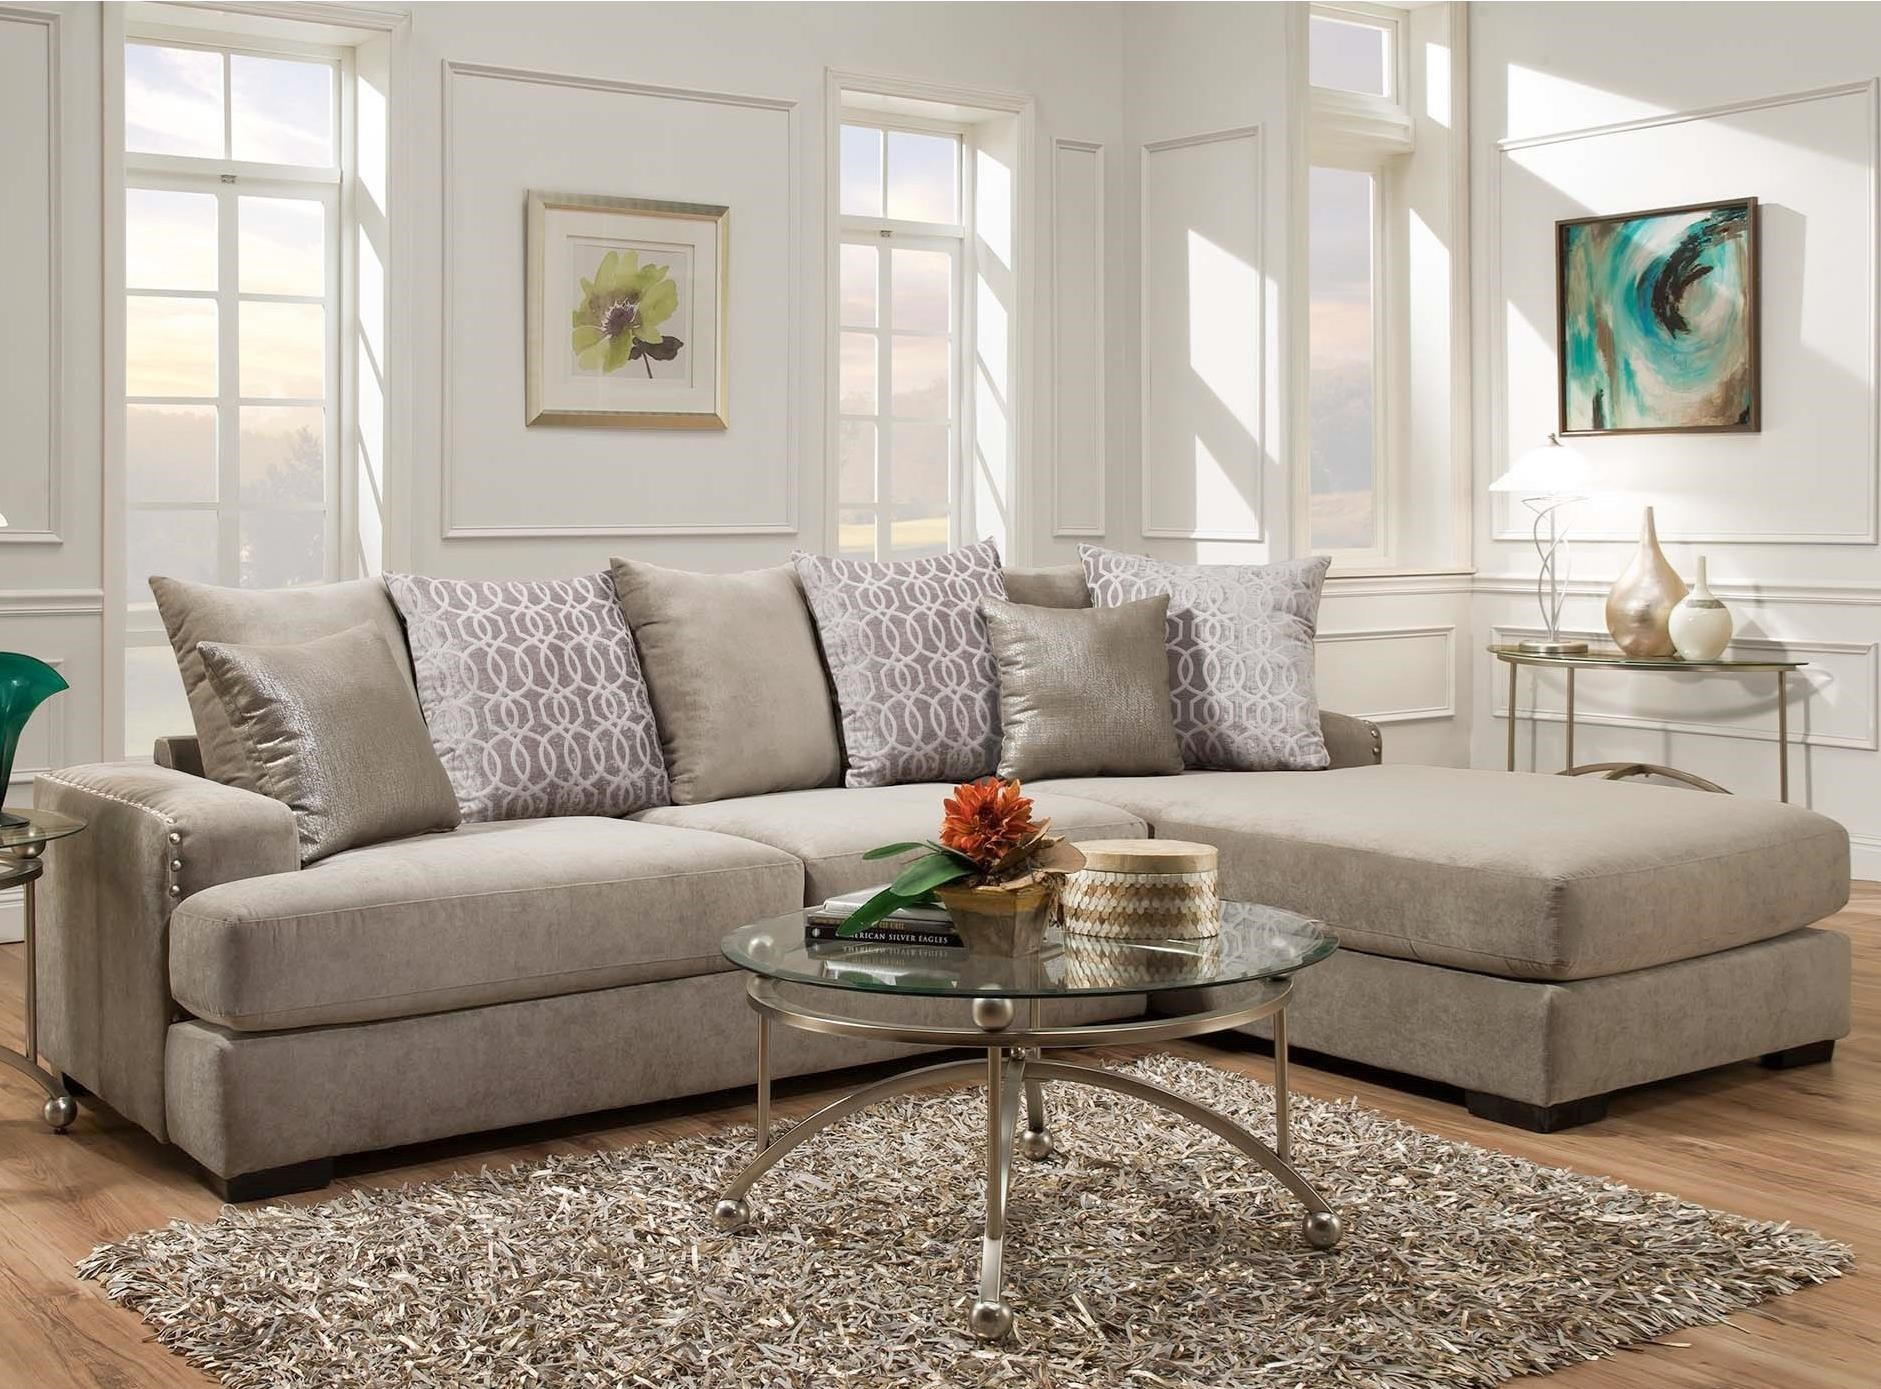 8642 transitional sectional sofa with chaise by albany beds for small places 348 laredo contemporary 2